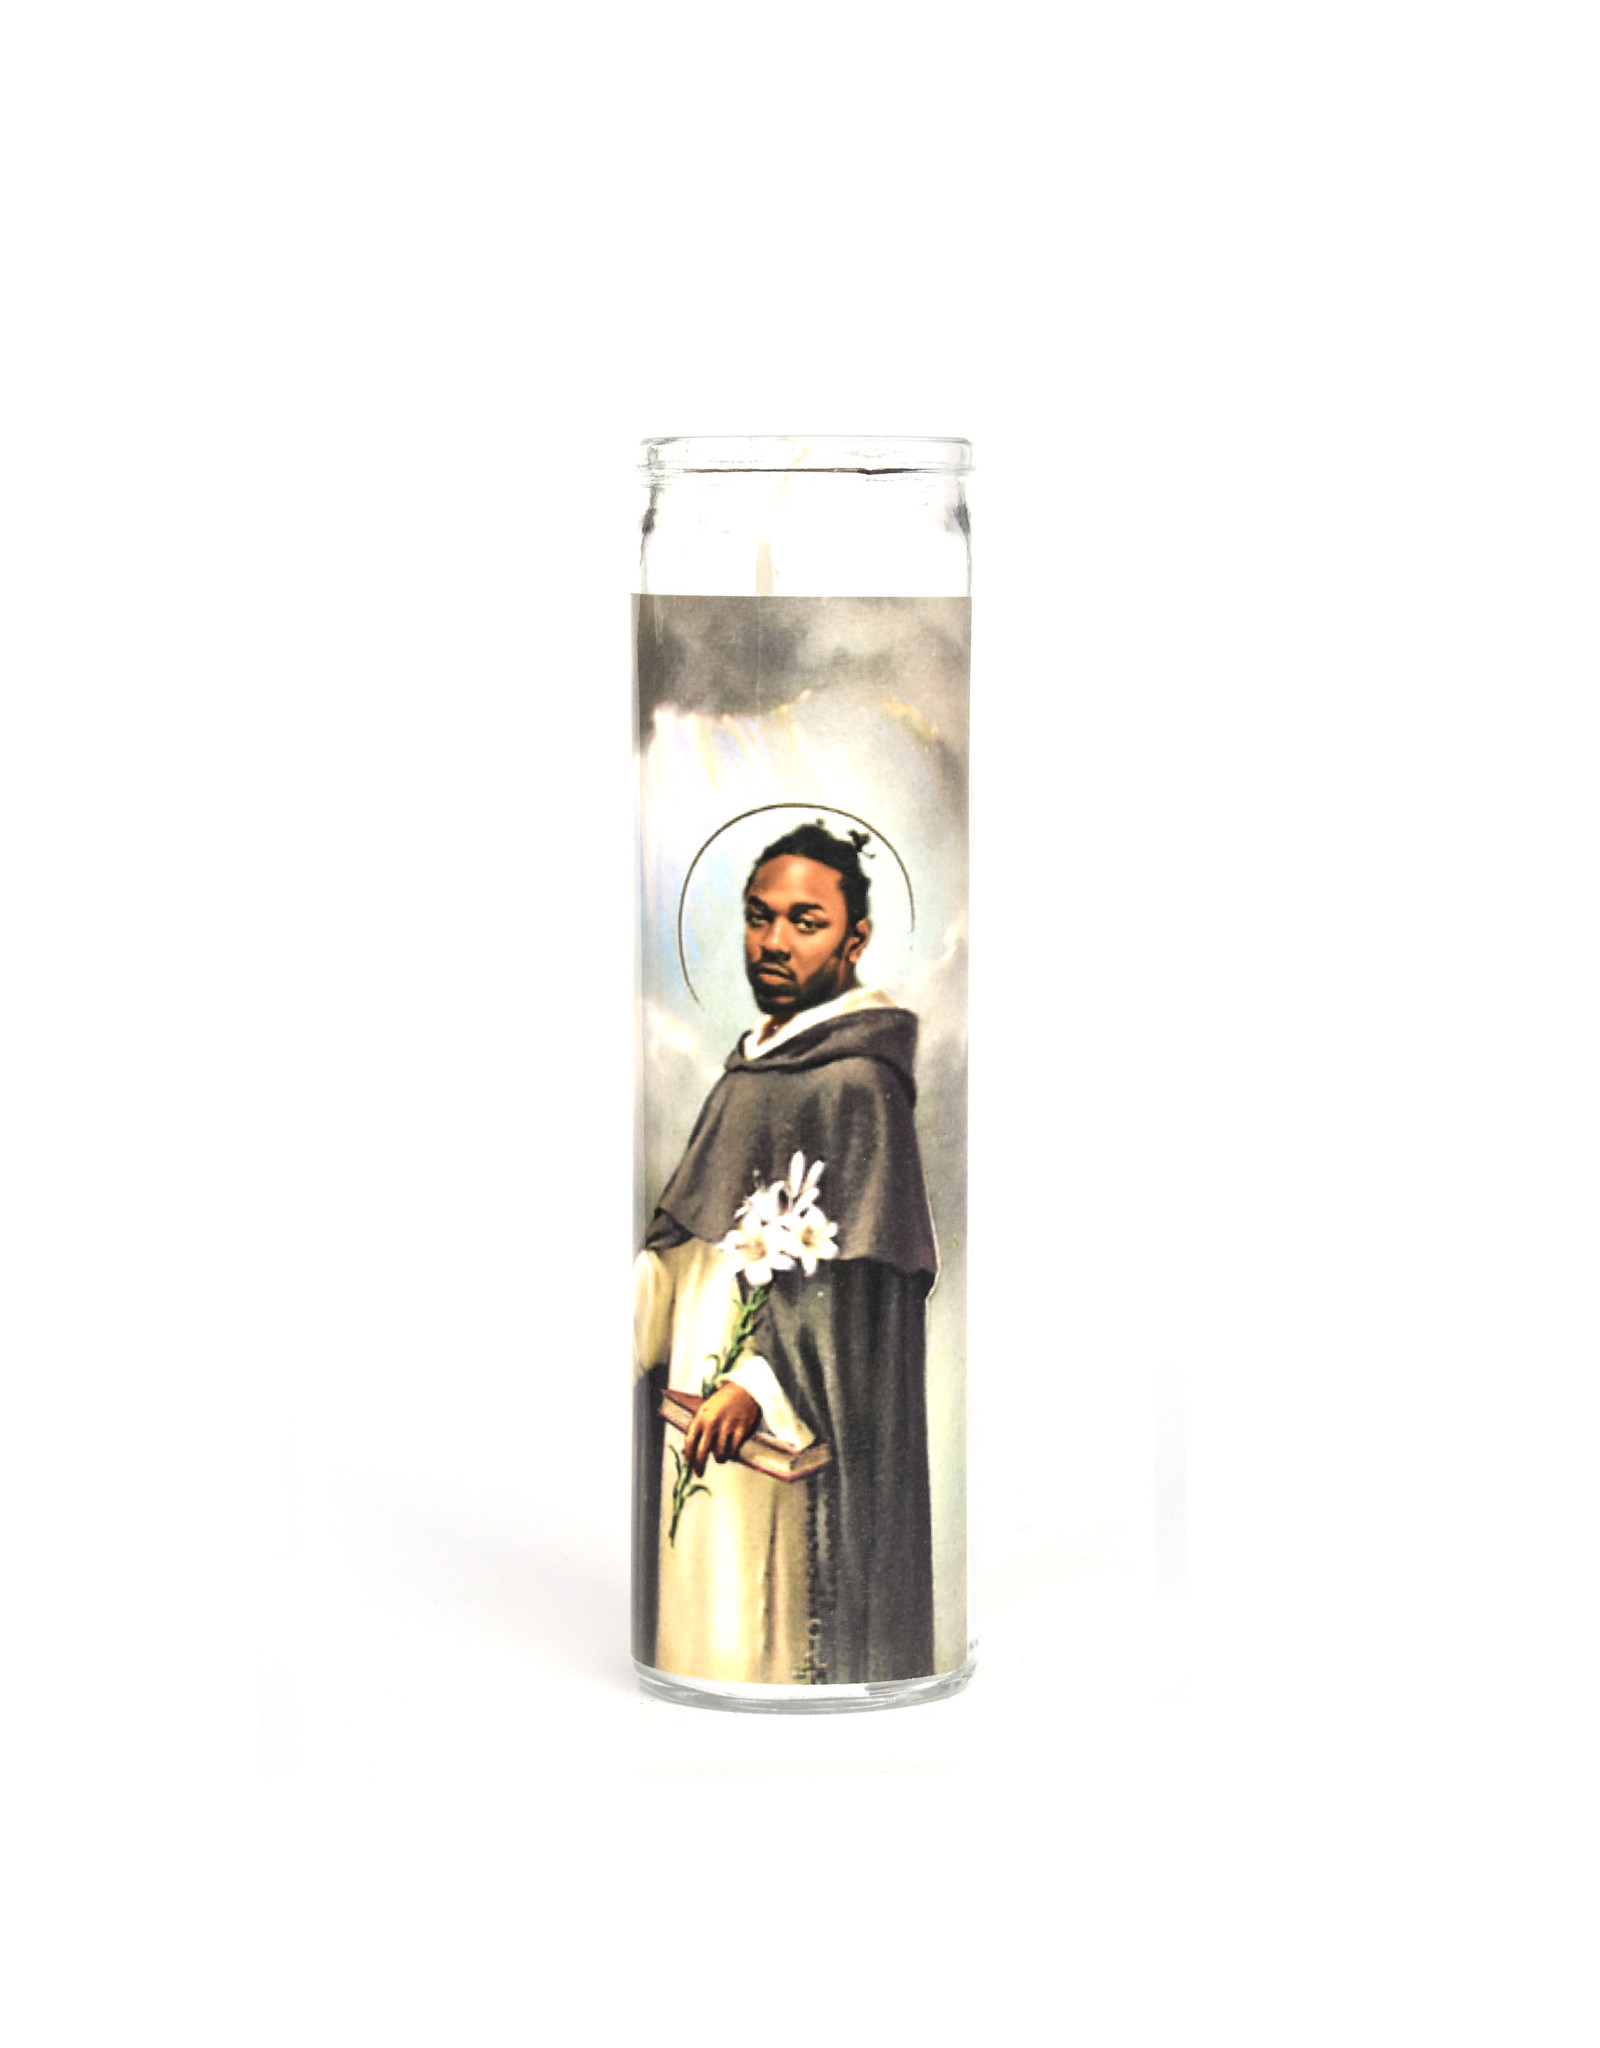 St. Kendrick Lamar Prayer Candle